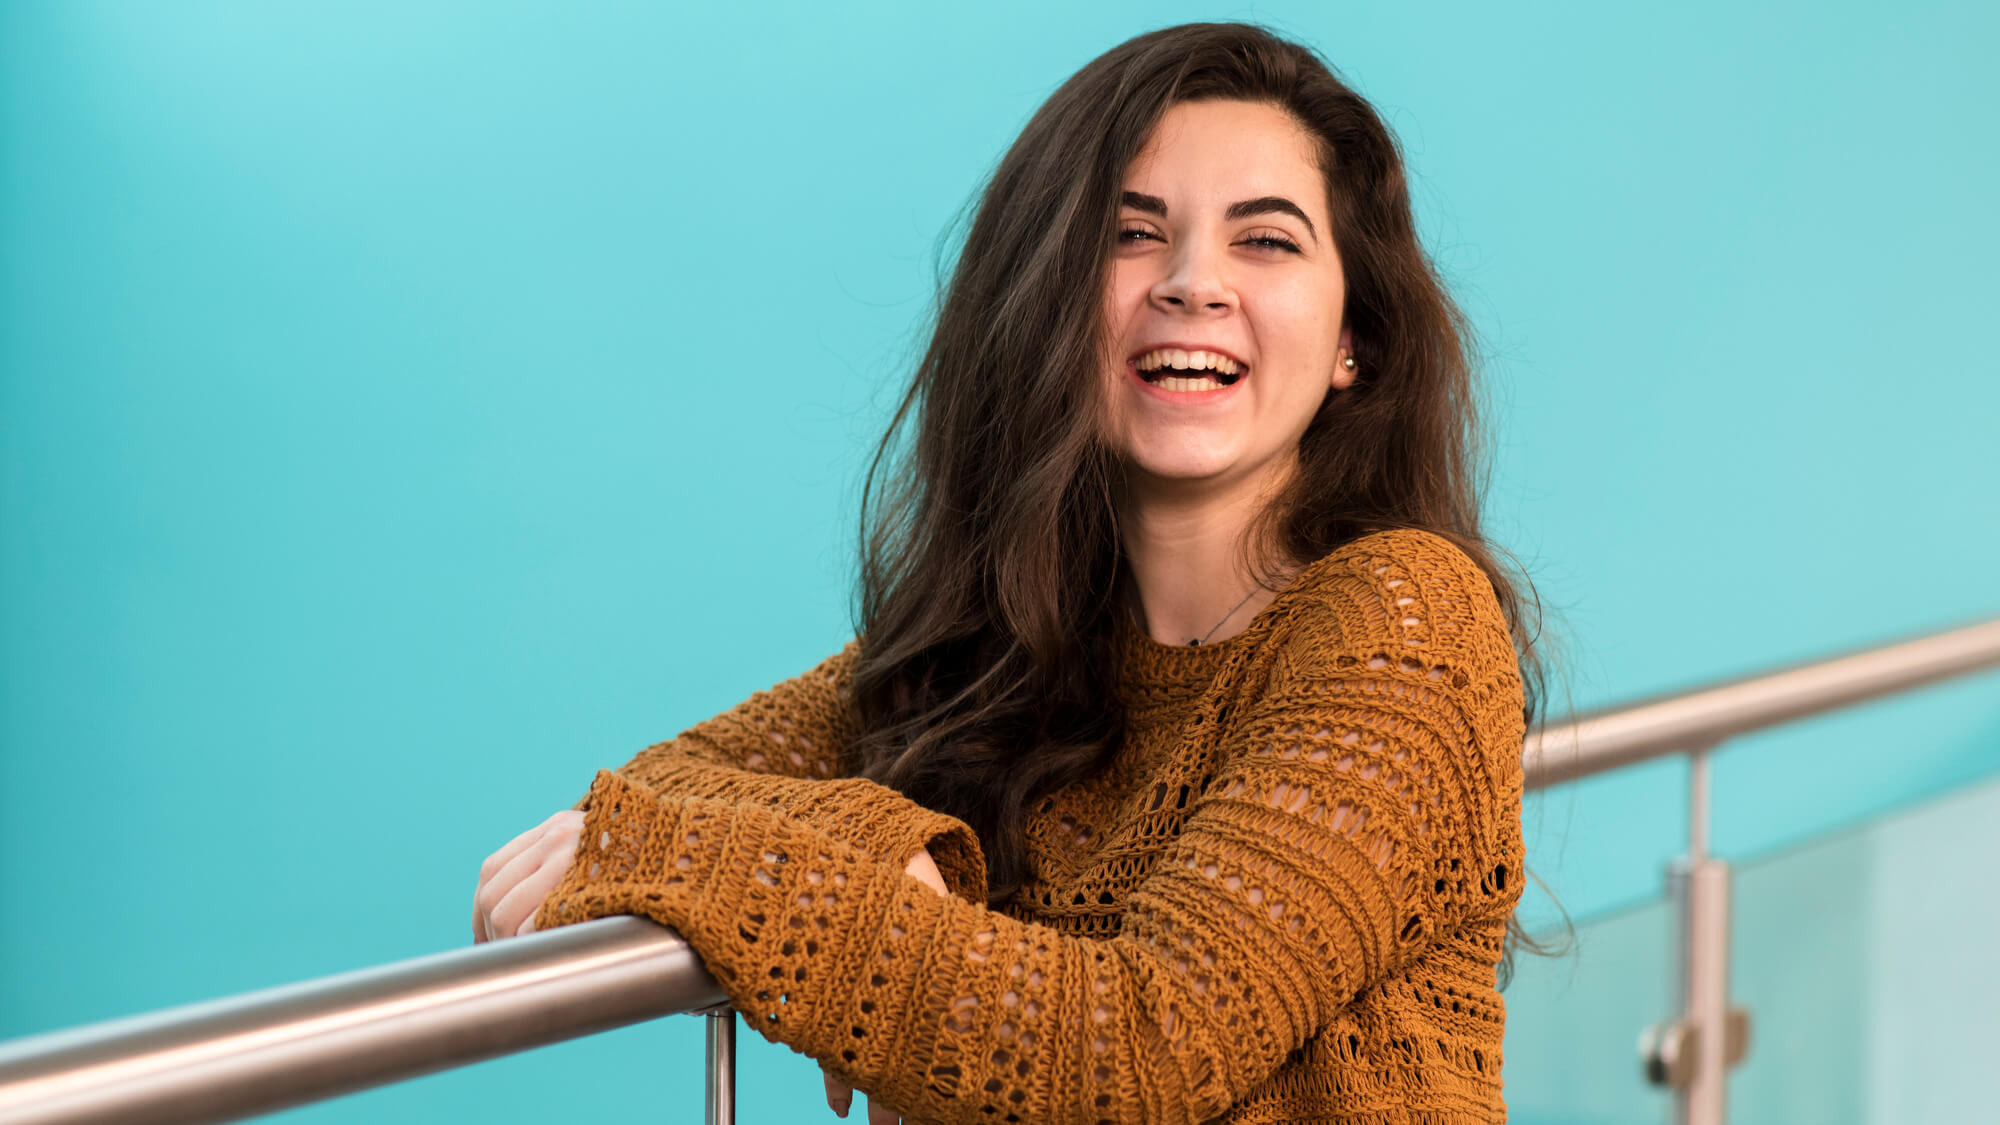 A dark haired female student leans on a wall smiling and laughing